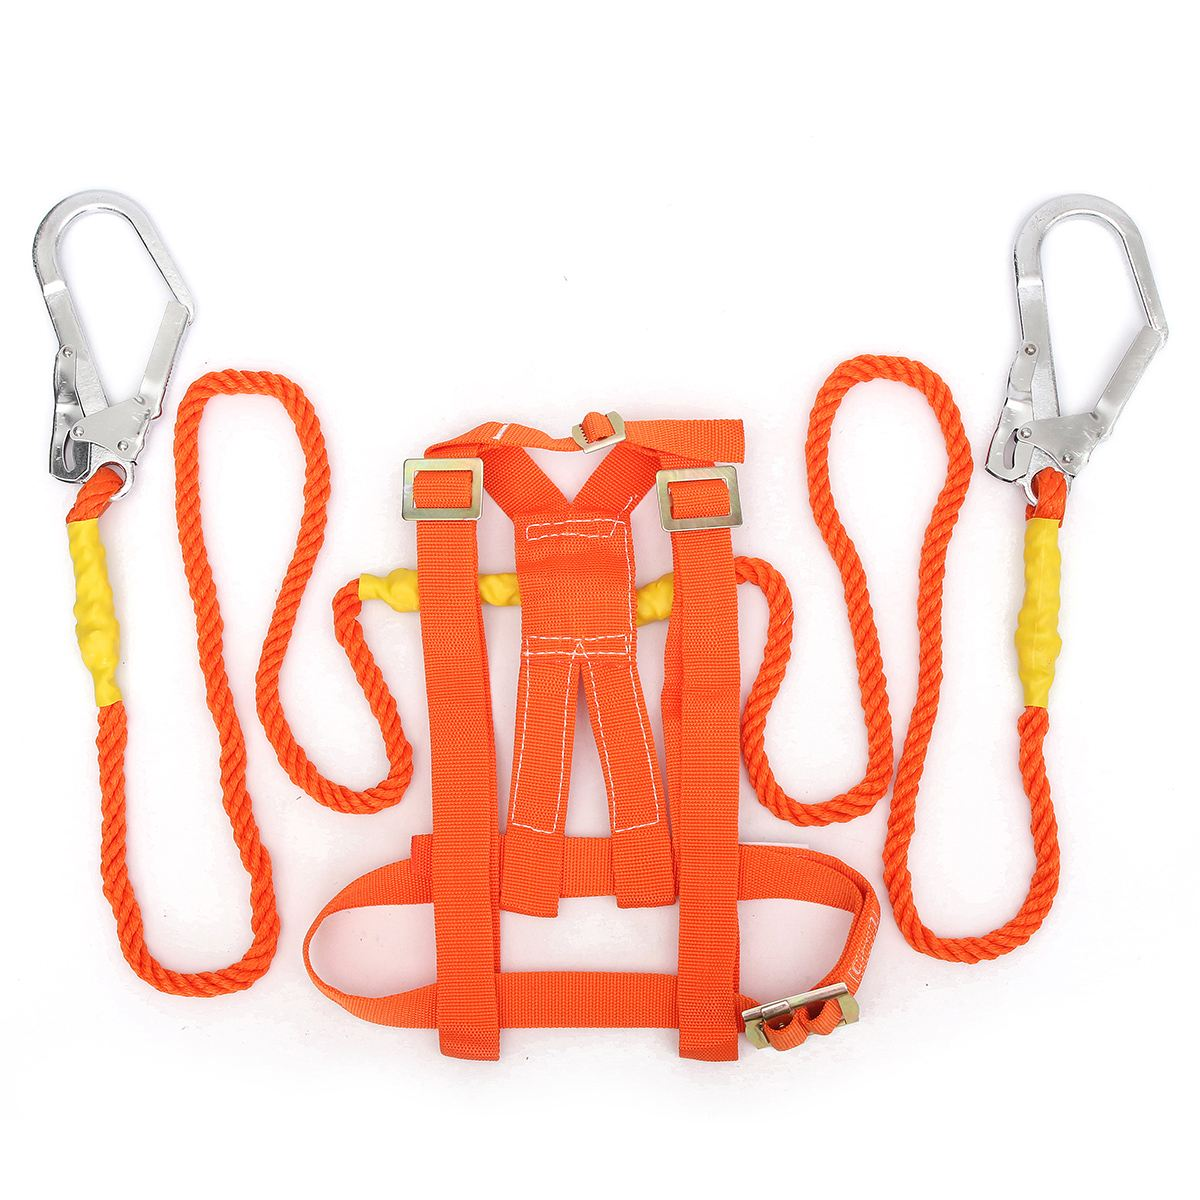 NEW Outdoor Climbing Climb Mountain Rope Safety Waist Belt Protection Equipment Workplace Safety Harness outdoor feet aid climb risers mountaineer climbing ascender tool anti dropping device protector 8 13mm rope foot riser equipment